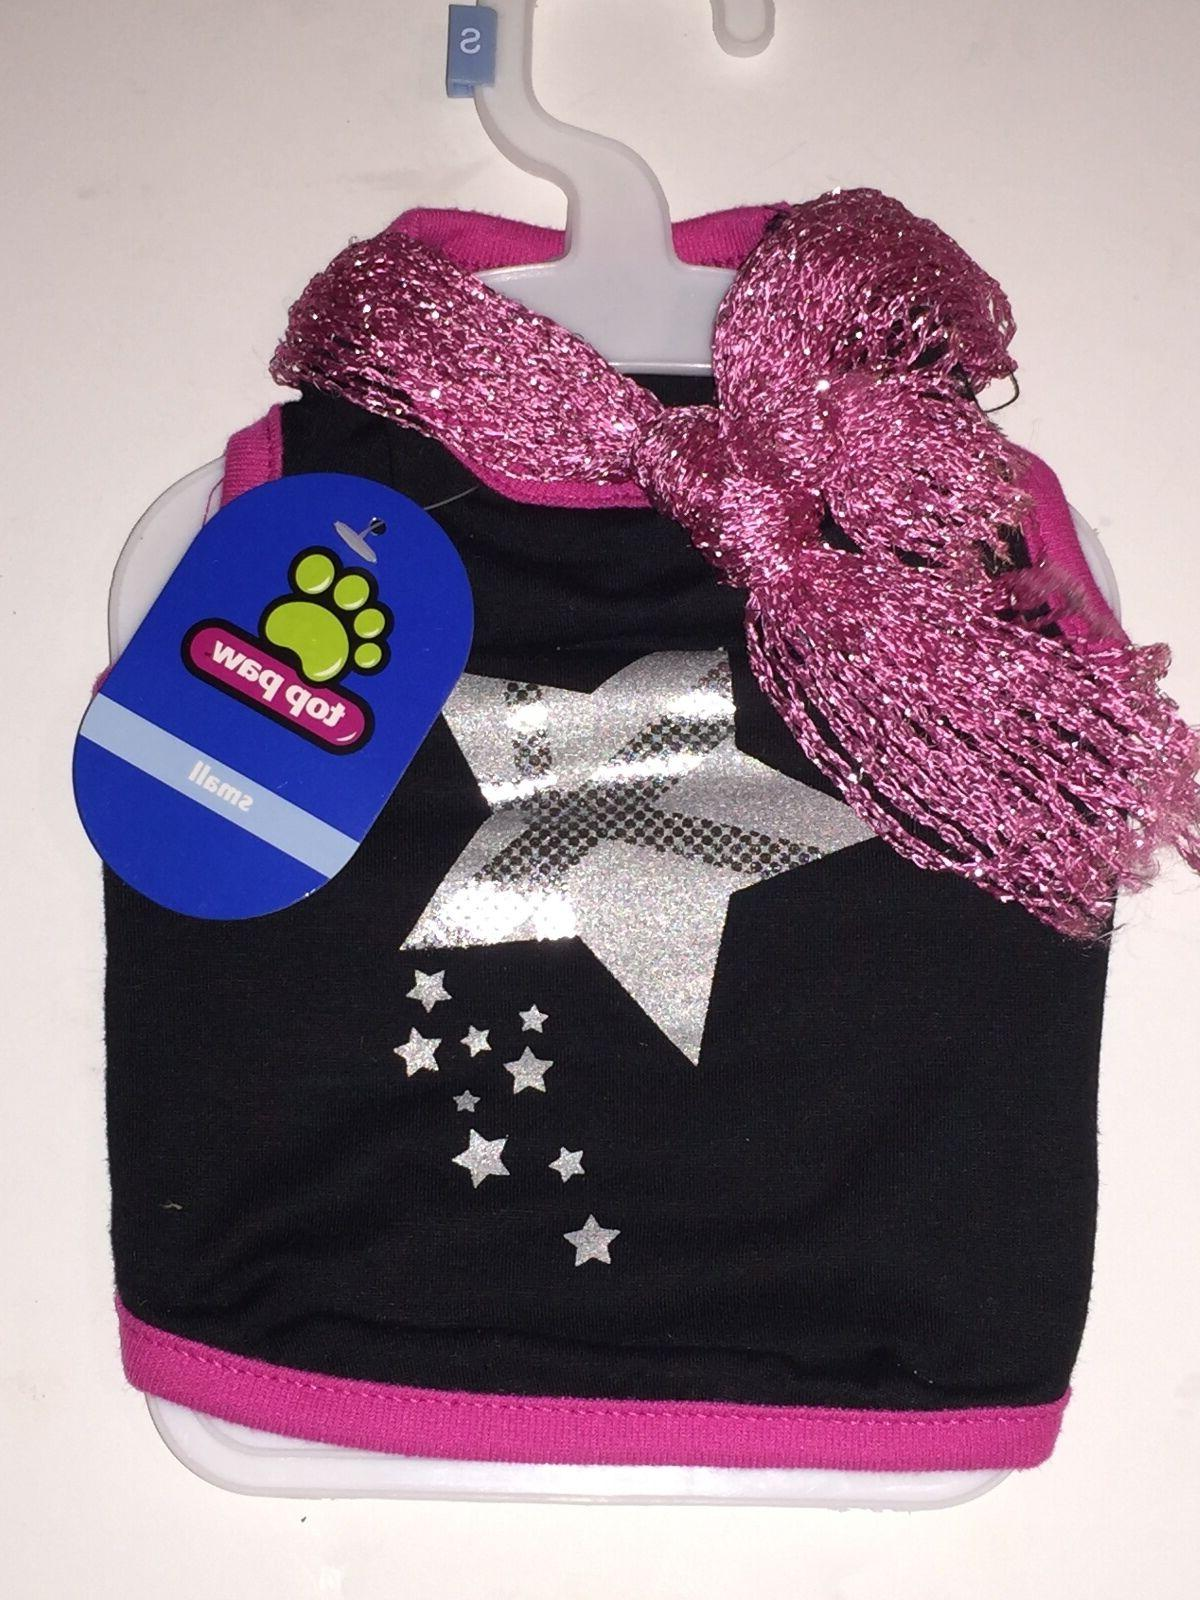 black and pink pet shirt with fashion